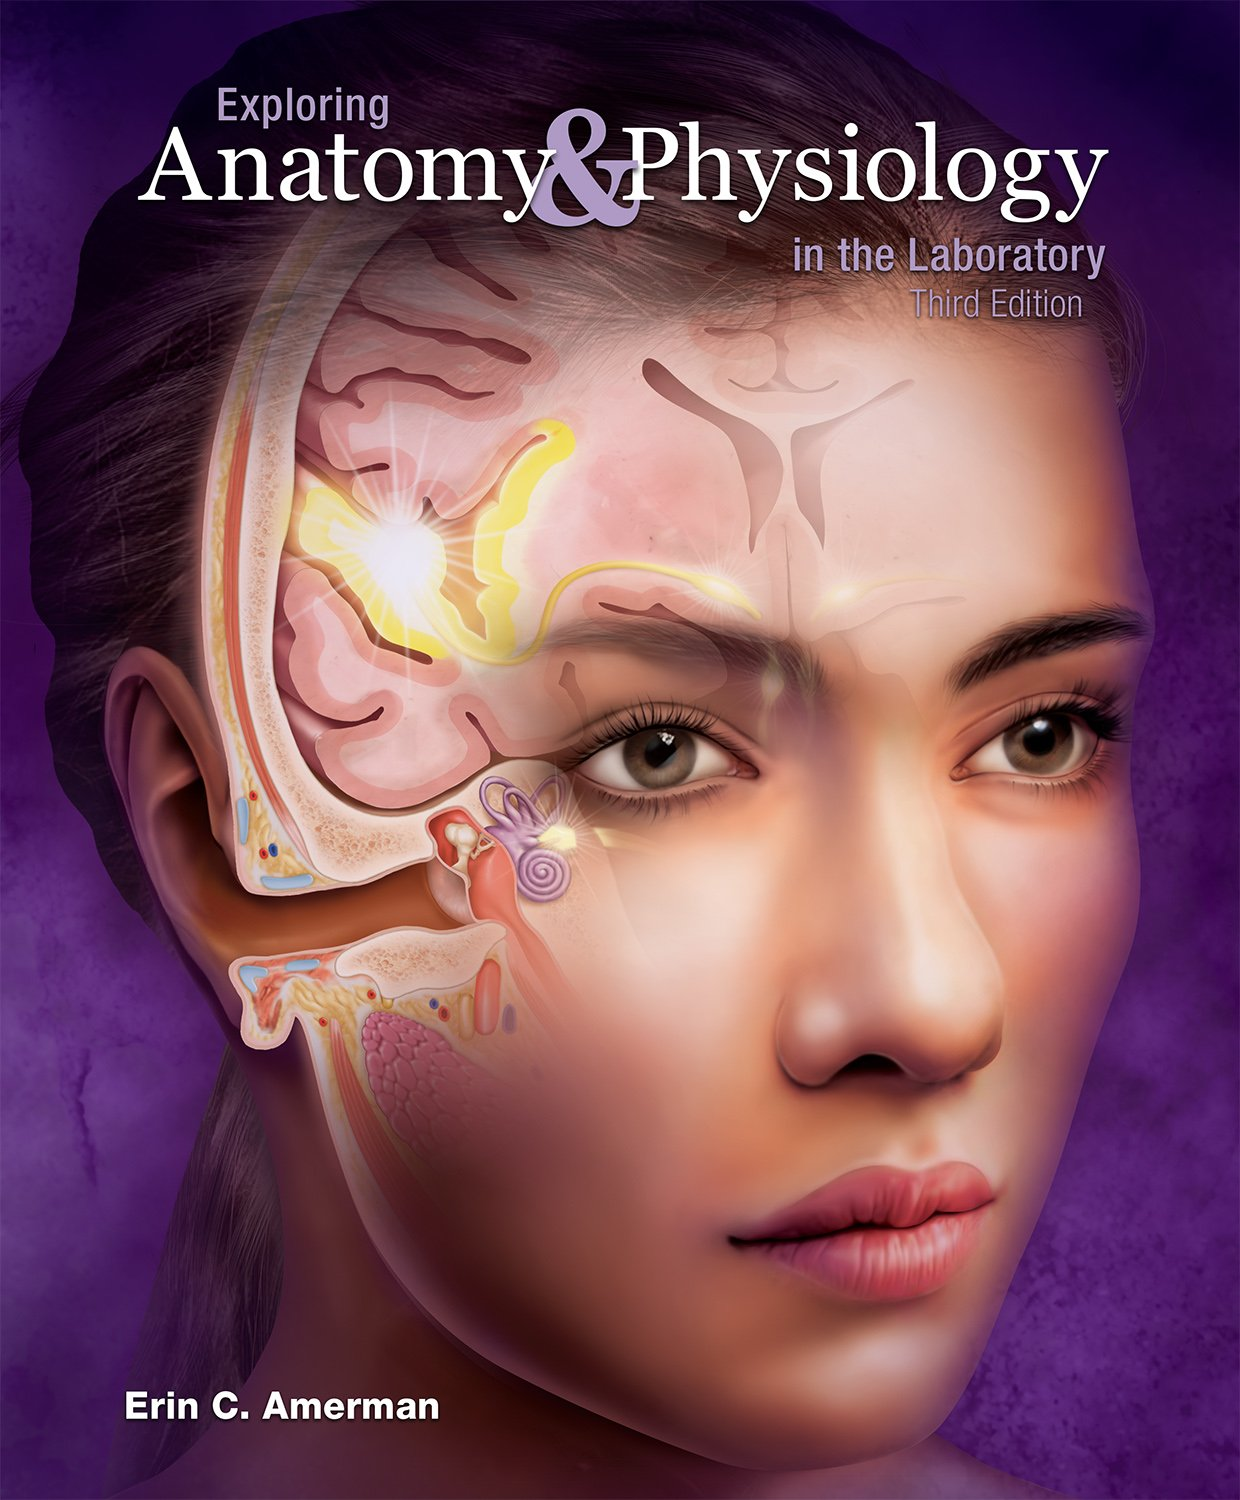 Exploring Anatomy & Physiology in the Laboratory, 3e by Morton Publishing Company